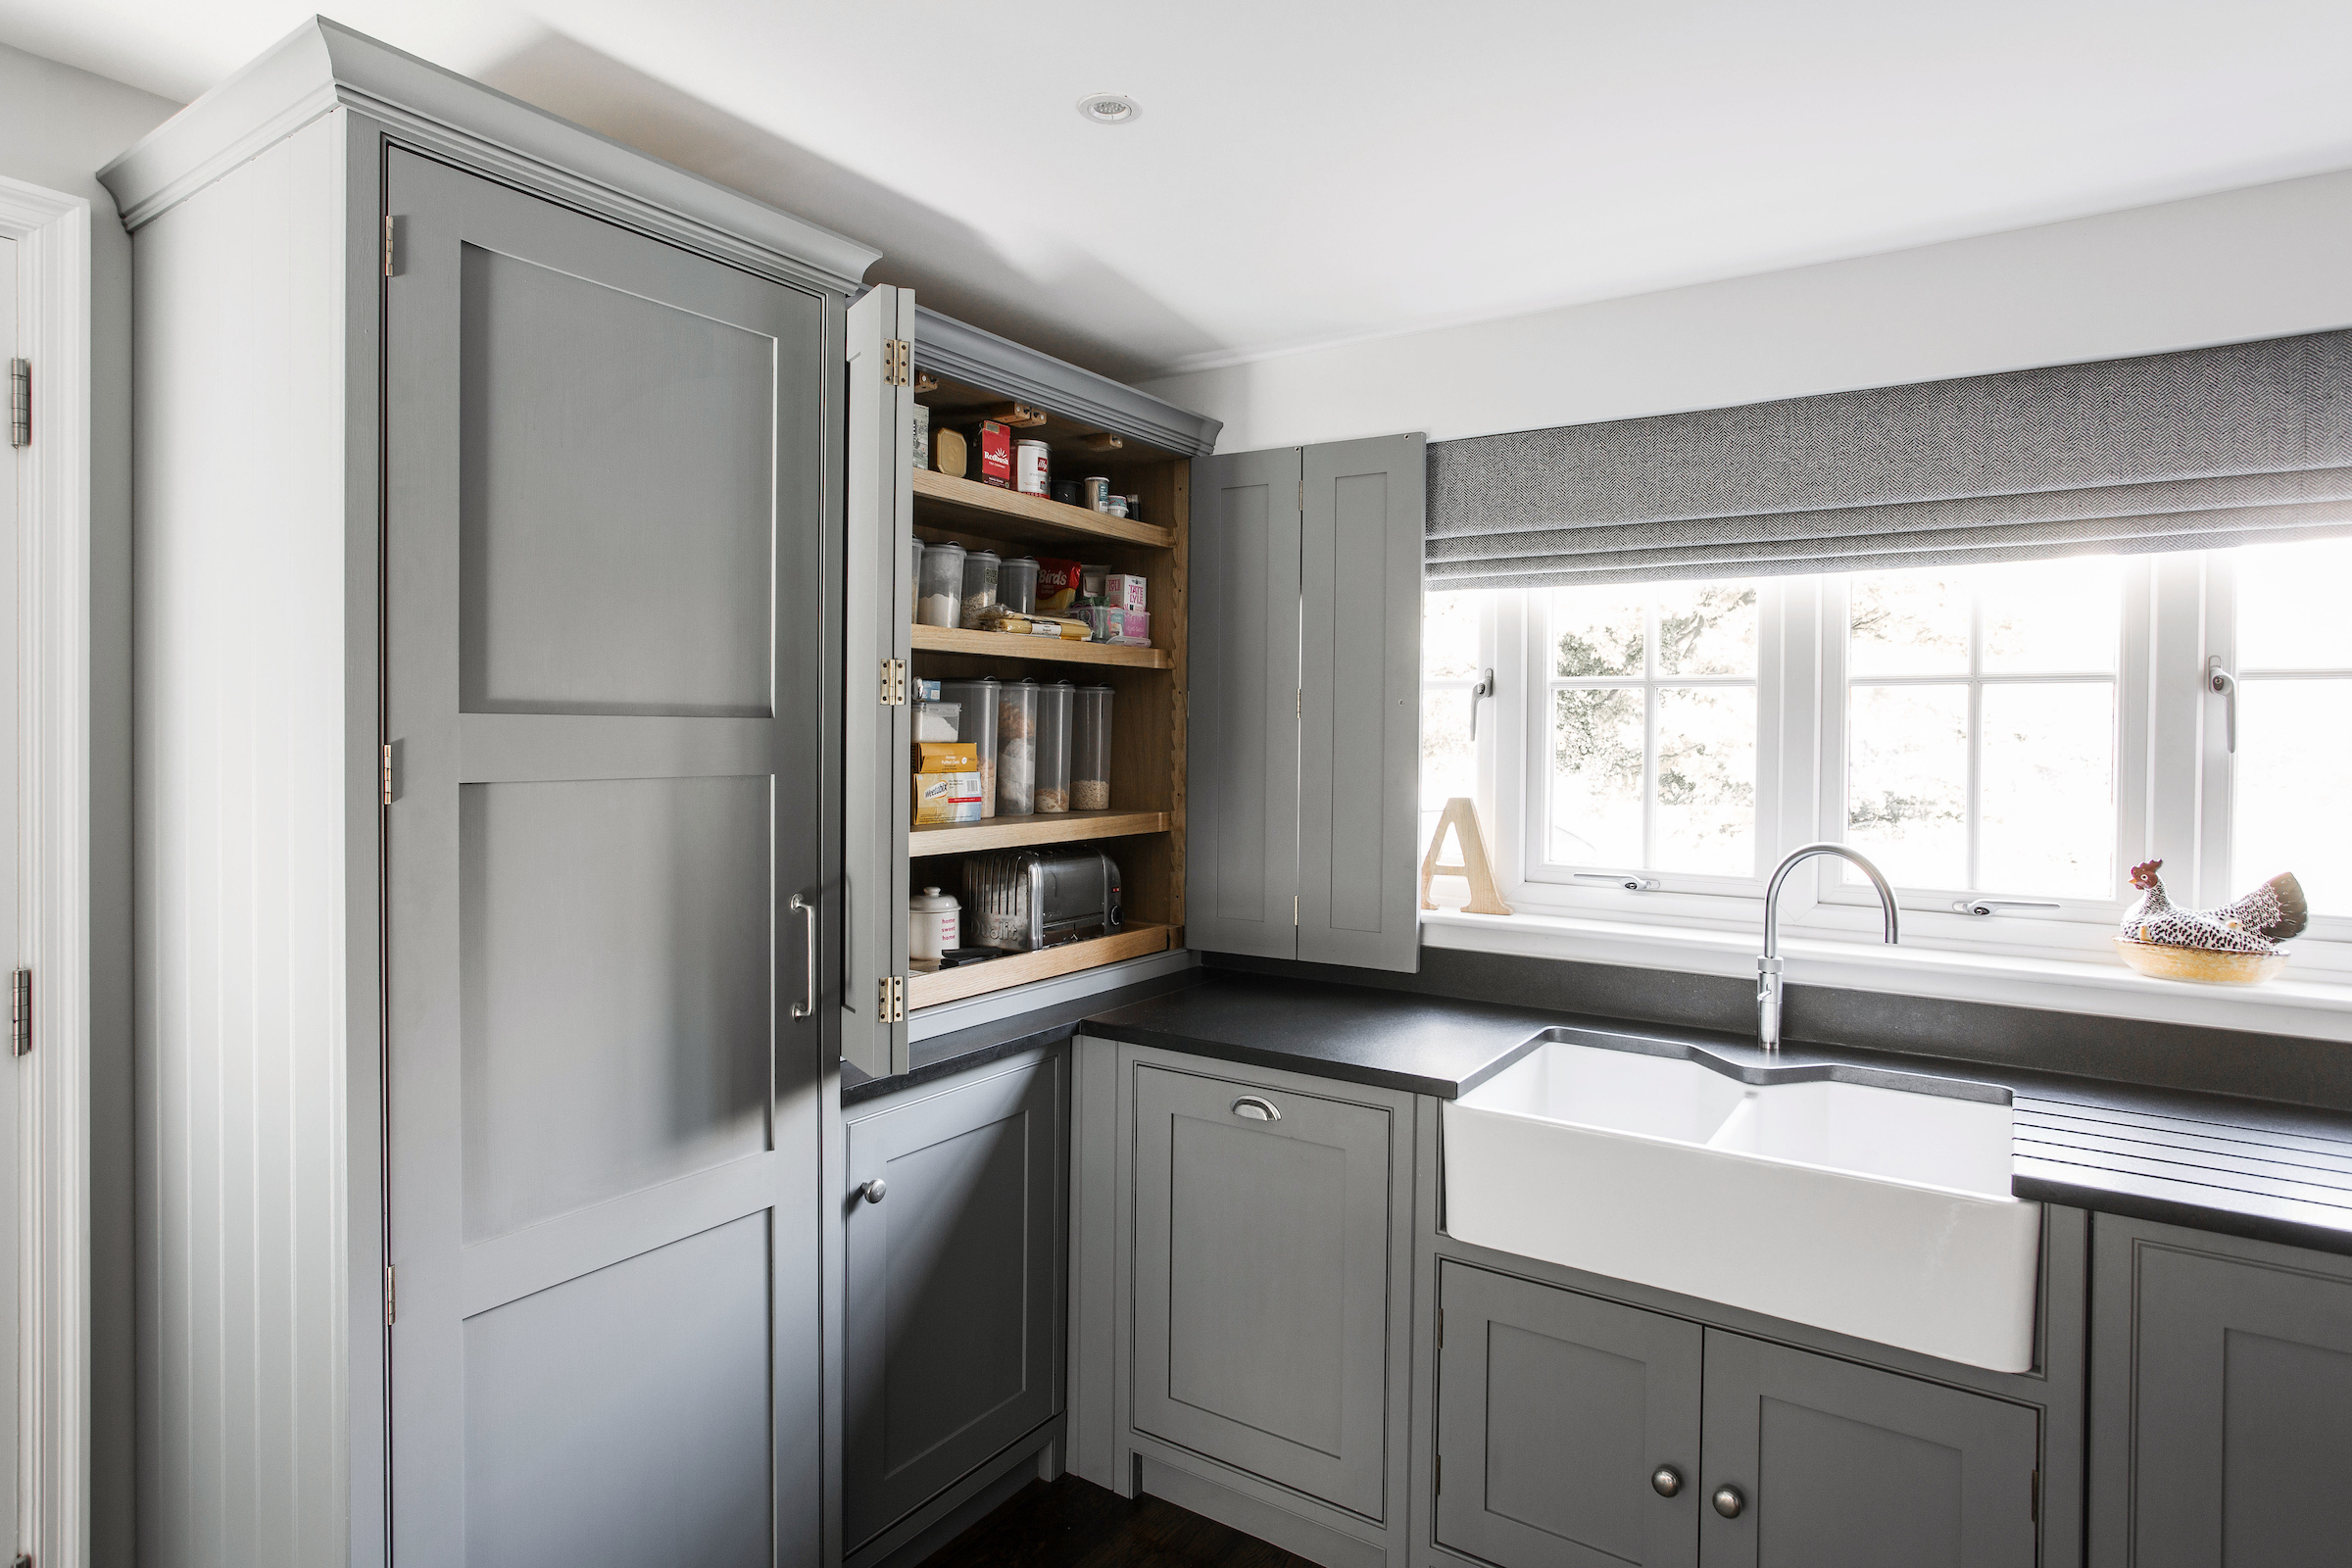 Home Design Ideas Pictures: A Functional Family Bespoke Kitchen